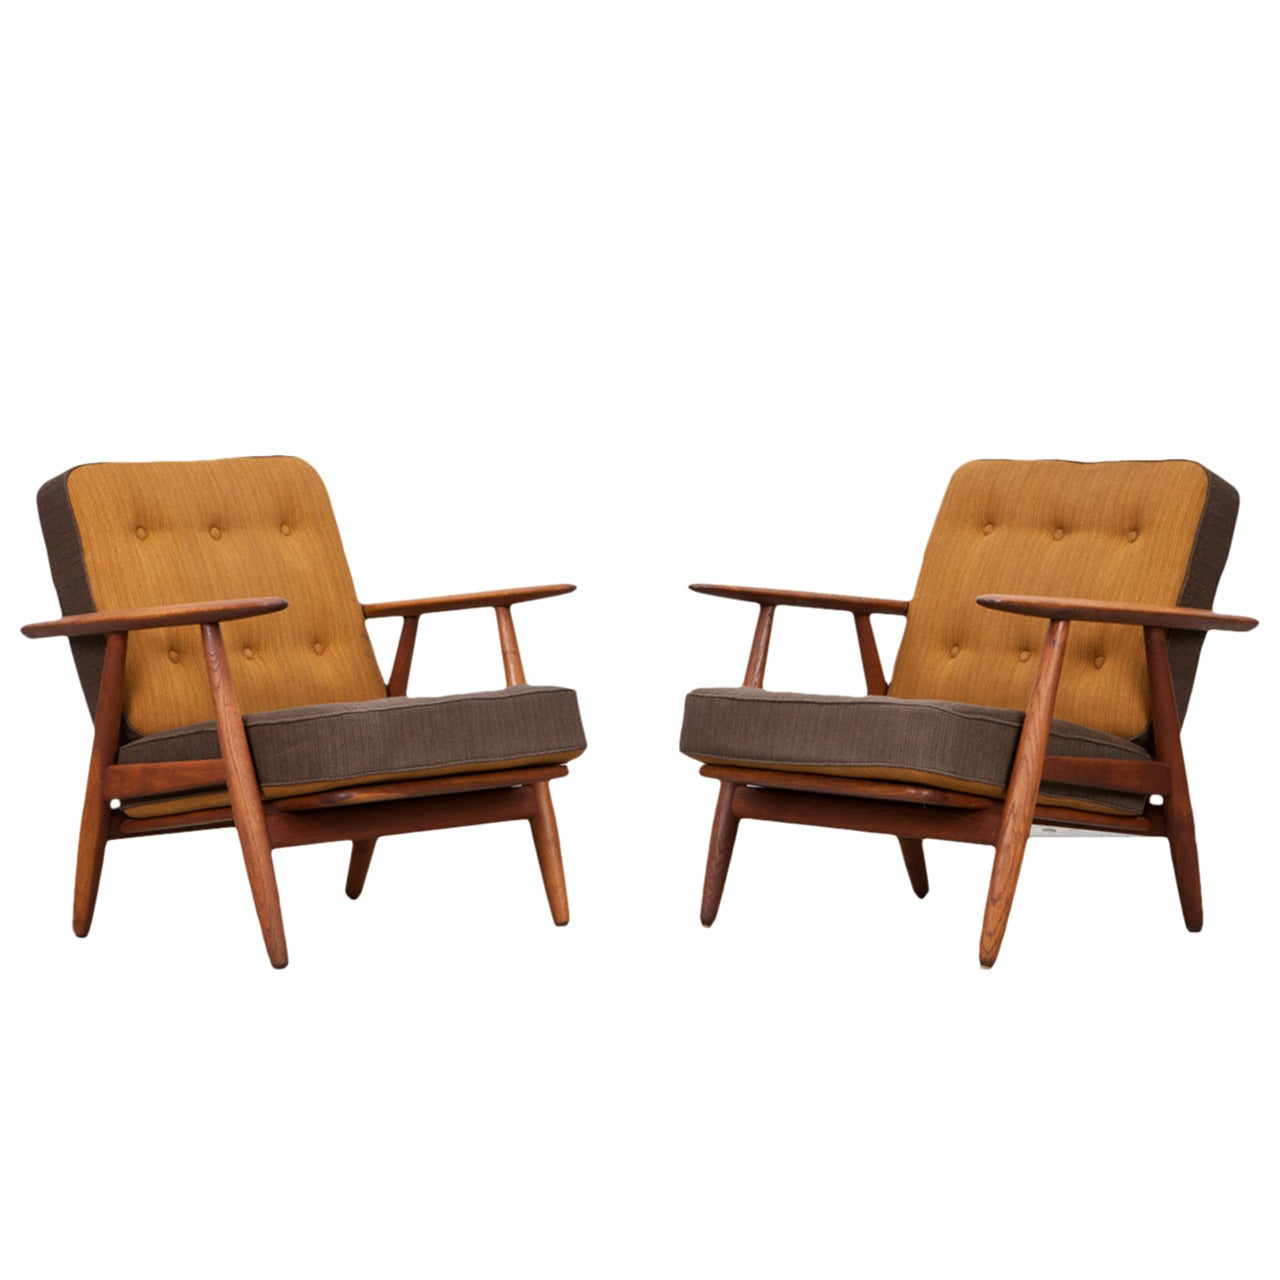 Rare Couple of Hans Wegner Lounge Chairs For Sale  sc 1 st  1stDibs & Rare Couple of Hans Wegner Lounge Chairs at 1stdibs